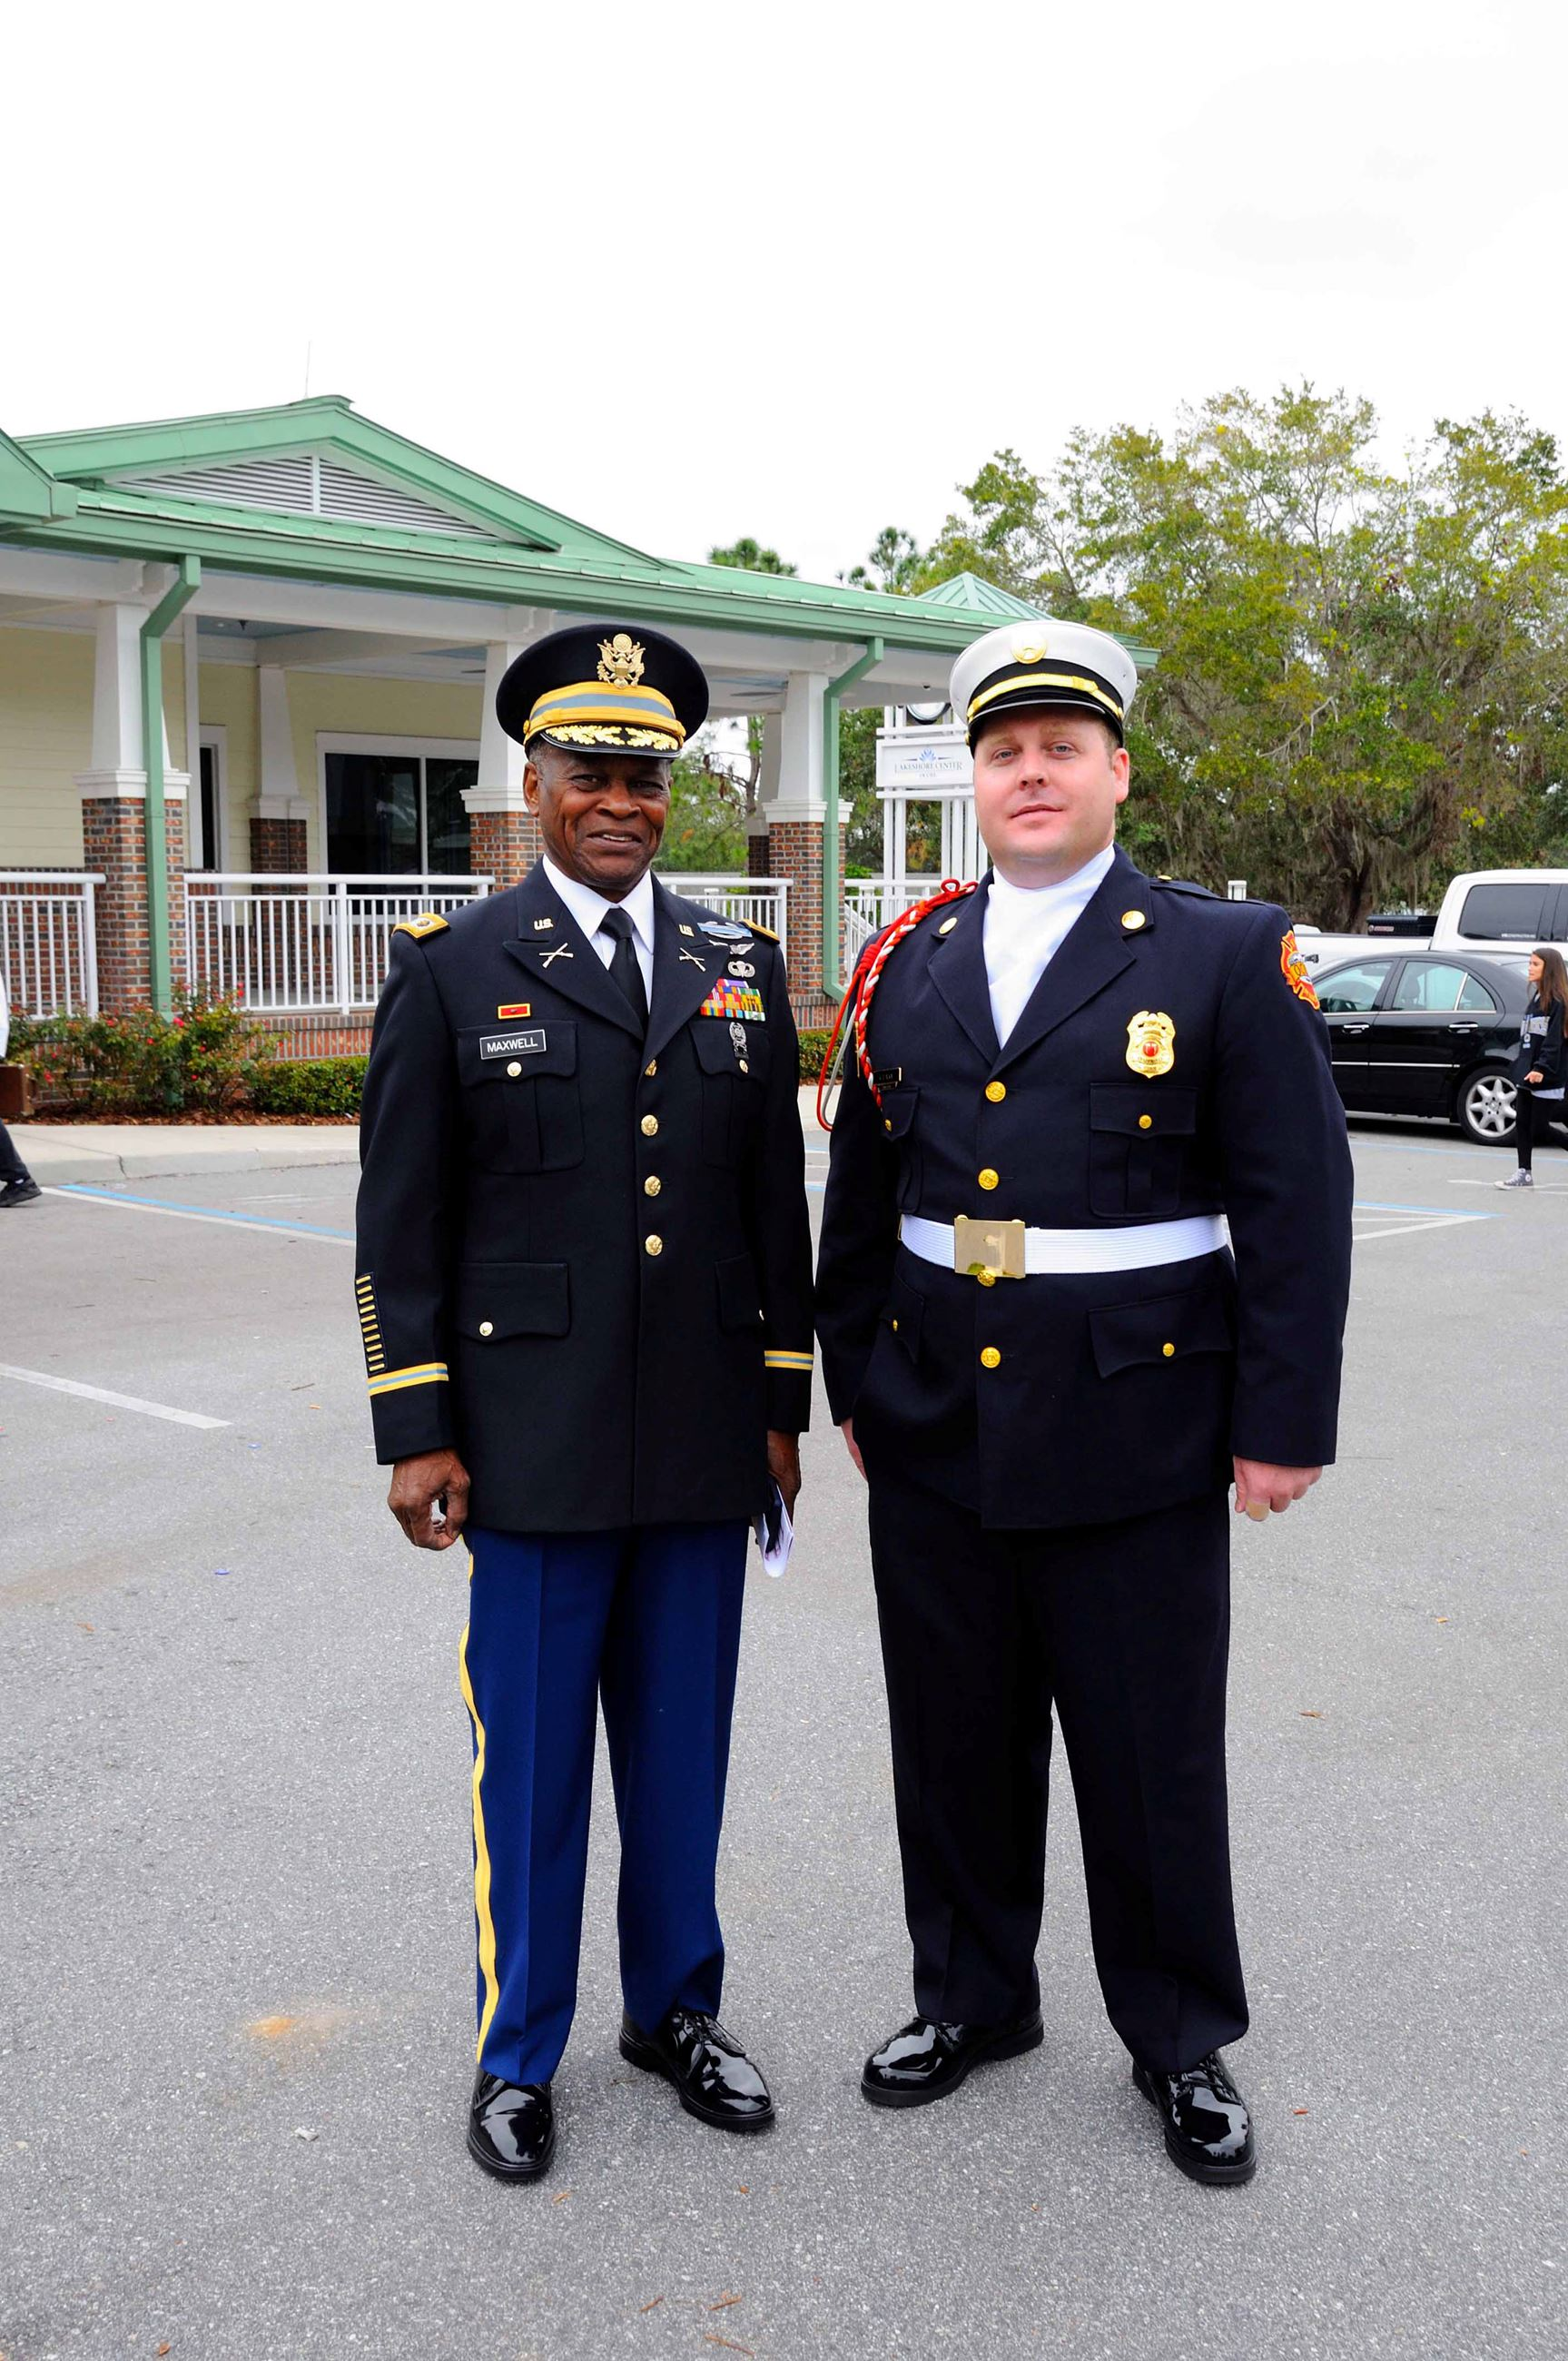 City of Ocoee Veteran's Day Ceremony